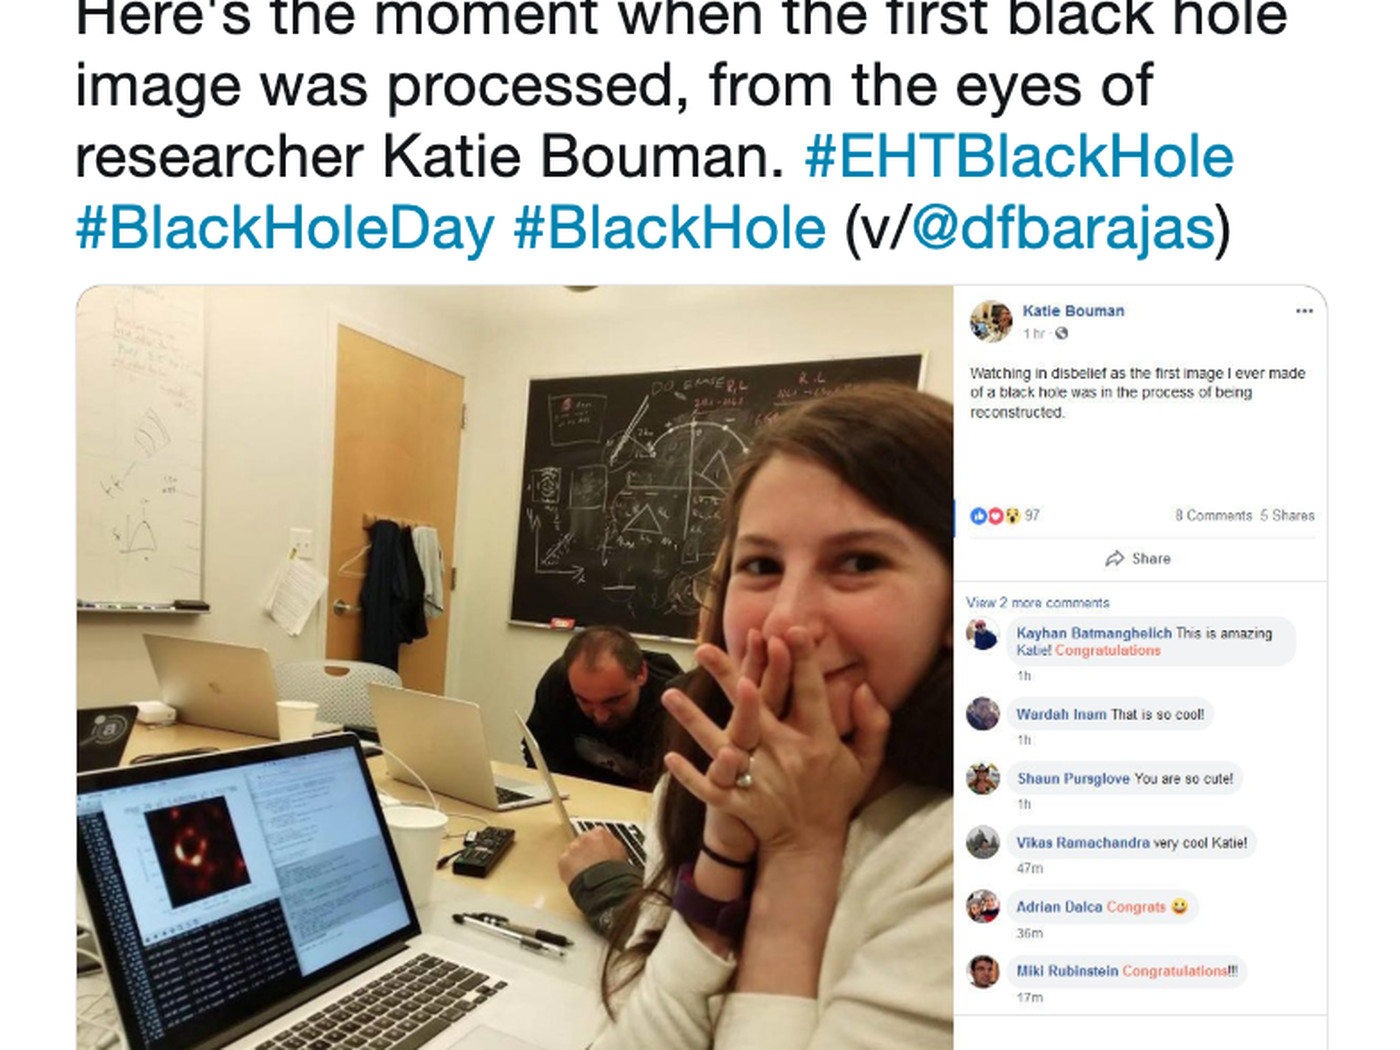 The black hole image and Katie Bouman: the sexist backlash against